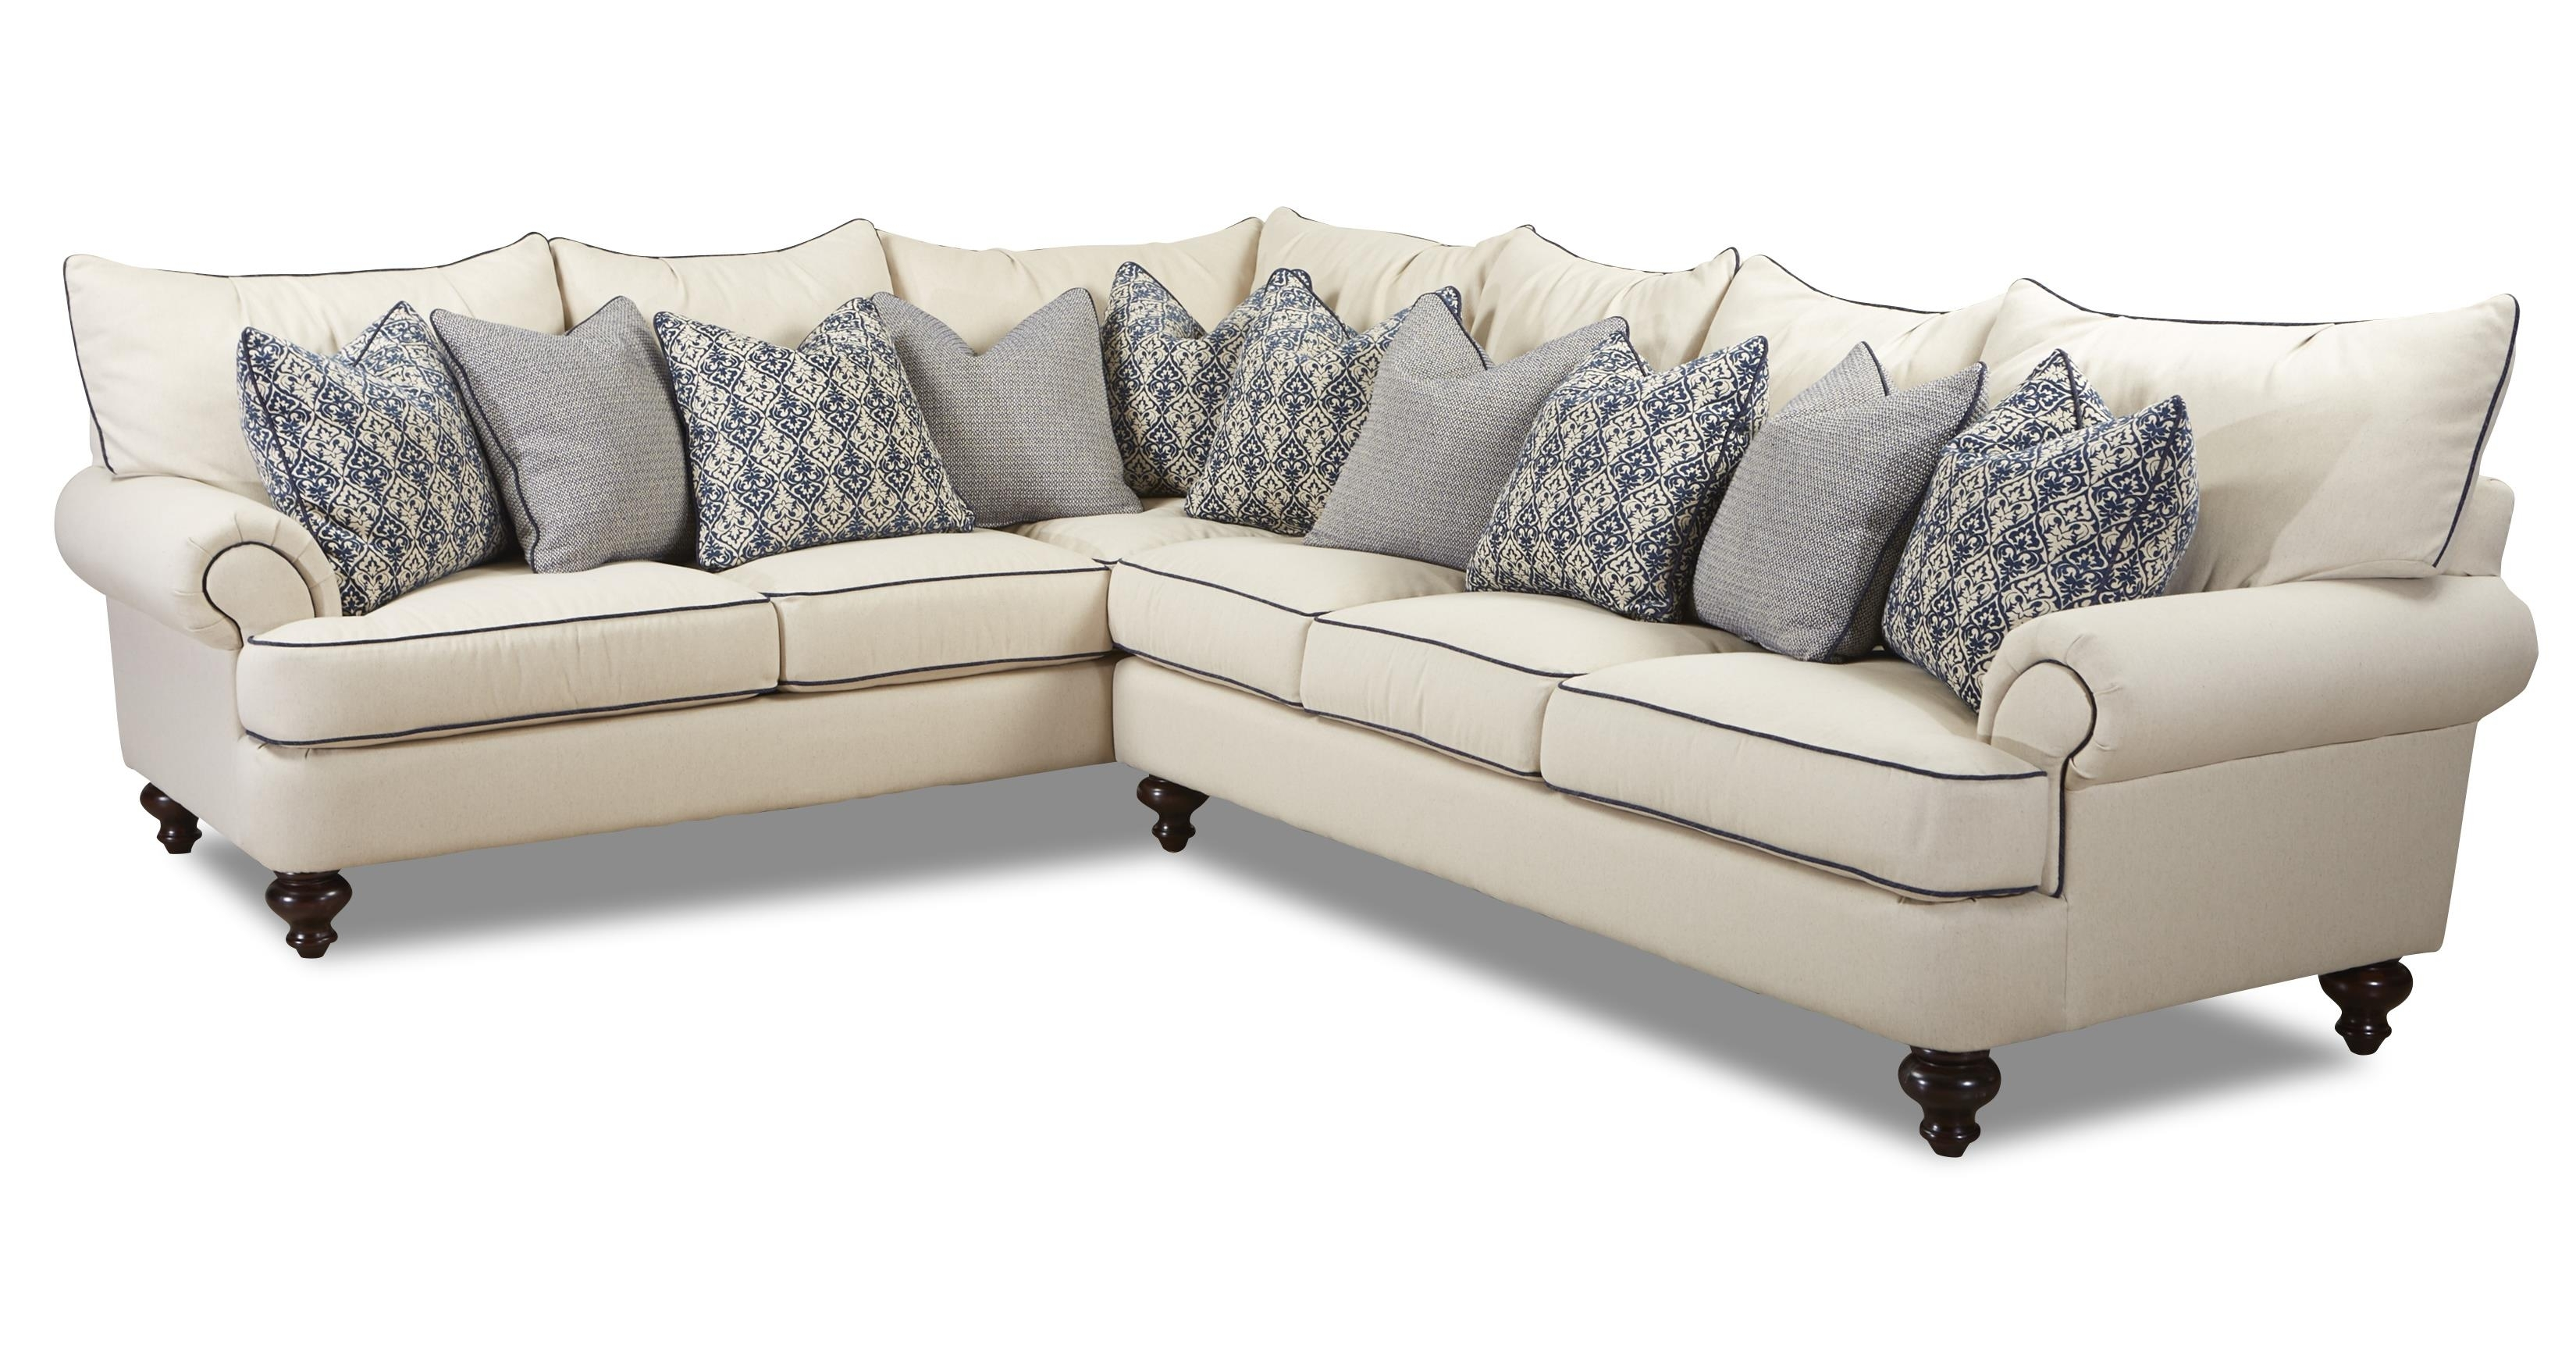 Shabby Chic Sectional Sofaklaussner | Wolf And Gardiner Wolf For Gardiners Sectional Sofas (View 3 of 10)